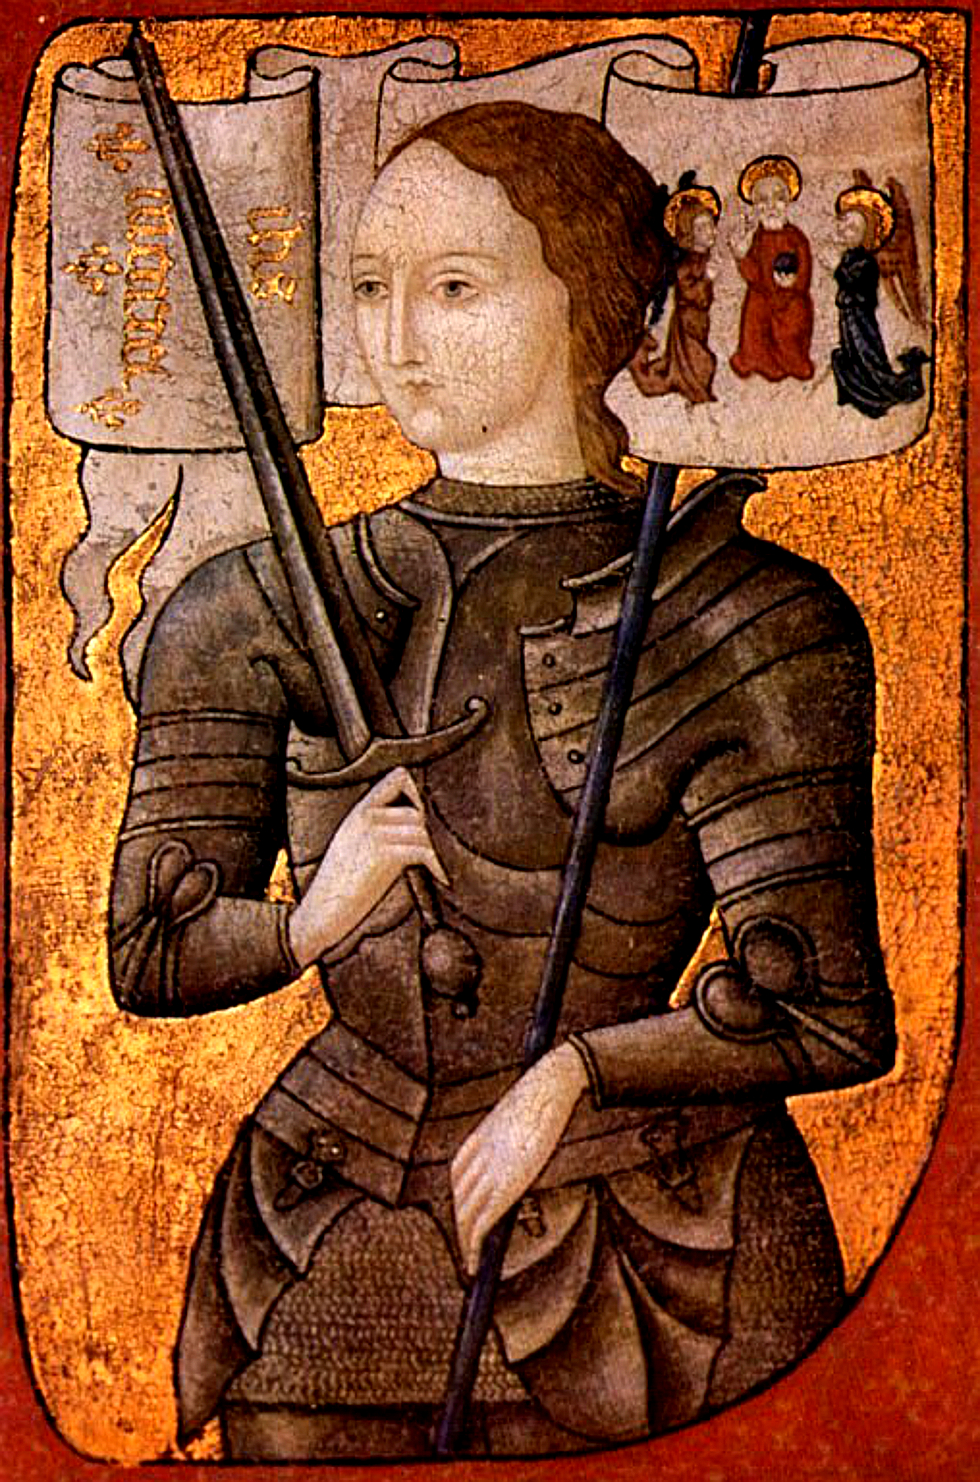 Joan of Arc oil on parchment miniature painted between 1450 and 1500. In the collection of Centre Historique des Archives Nationales, Paris, AE II 2490.